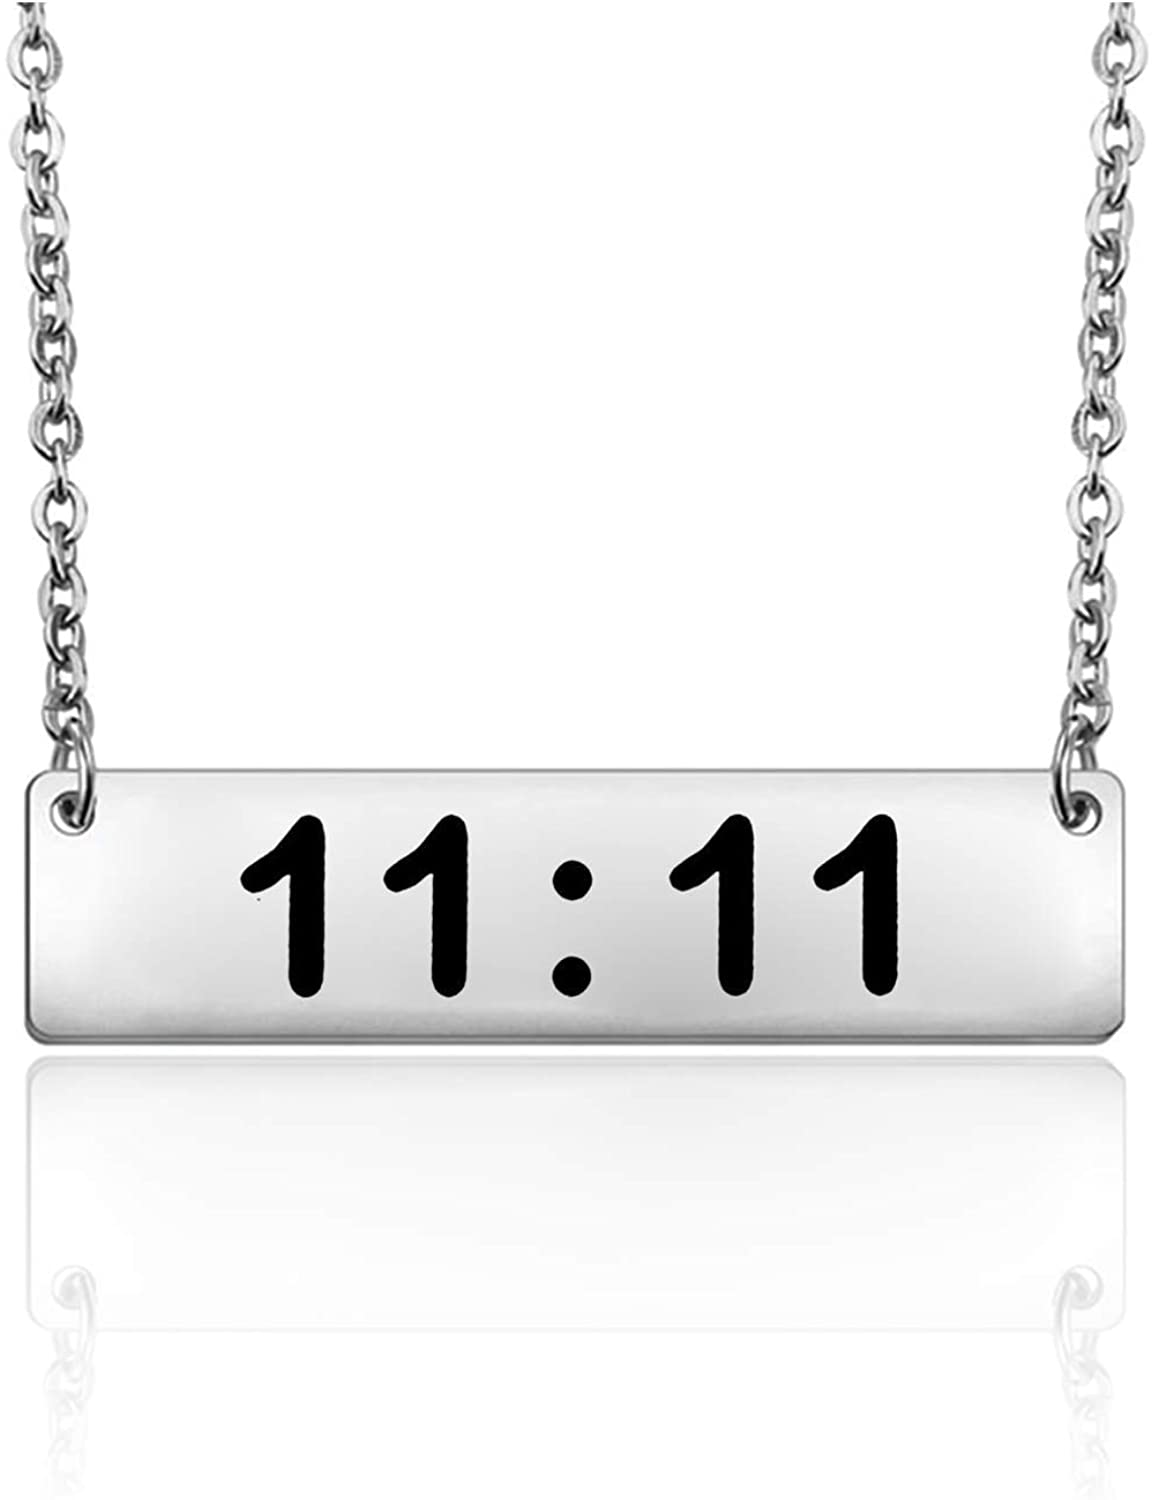 BNQL Make A Wish 11:11 Necklace Spiritual Jewelry Wishing Necklace for Women